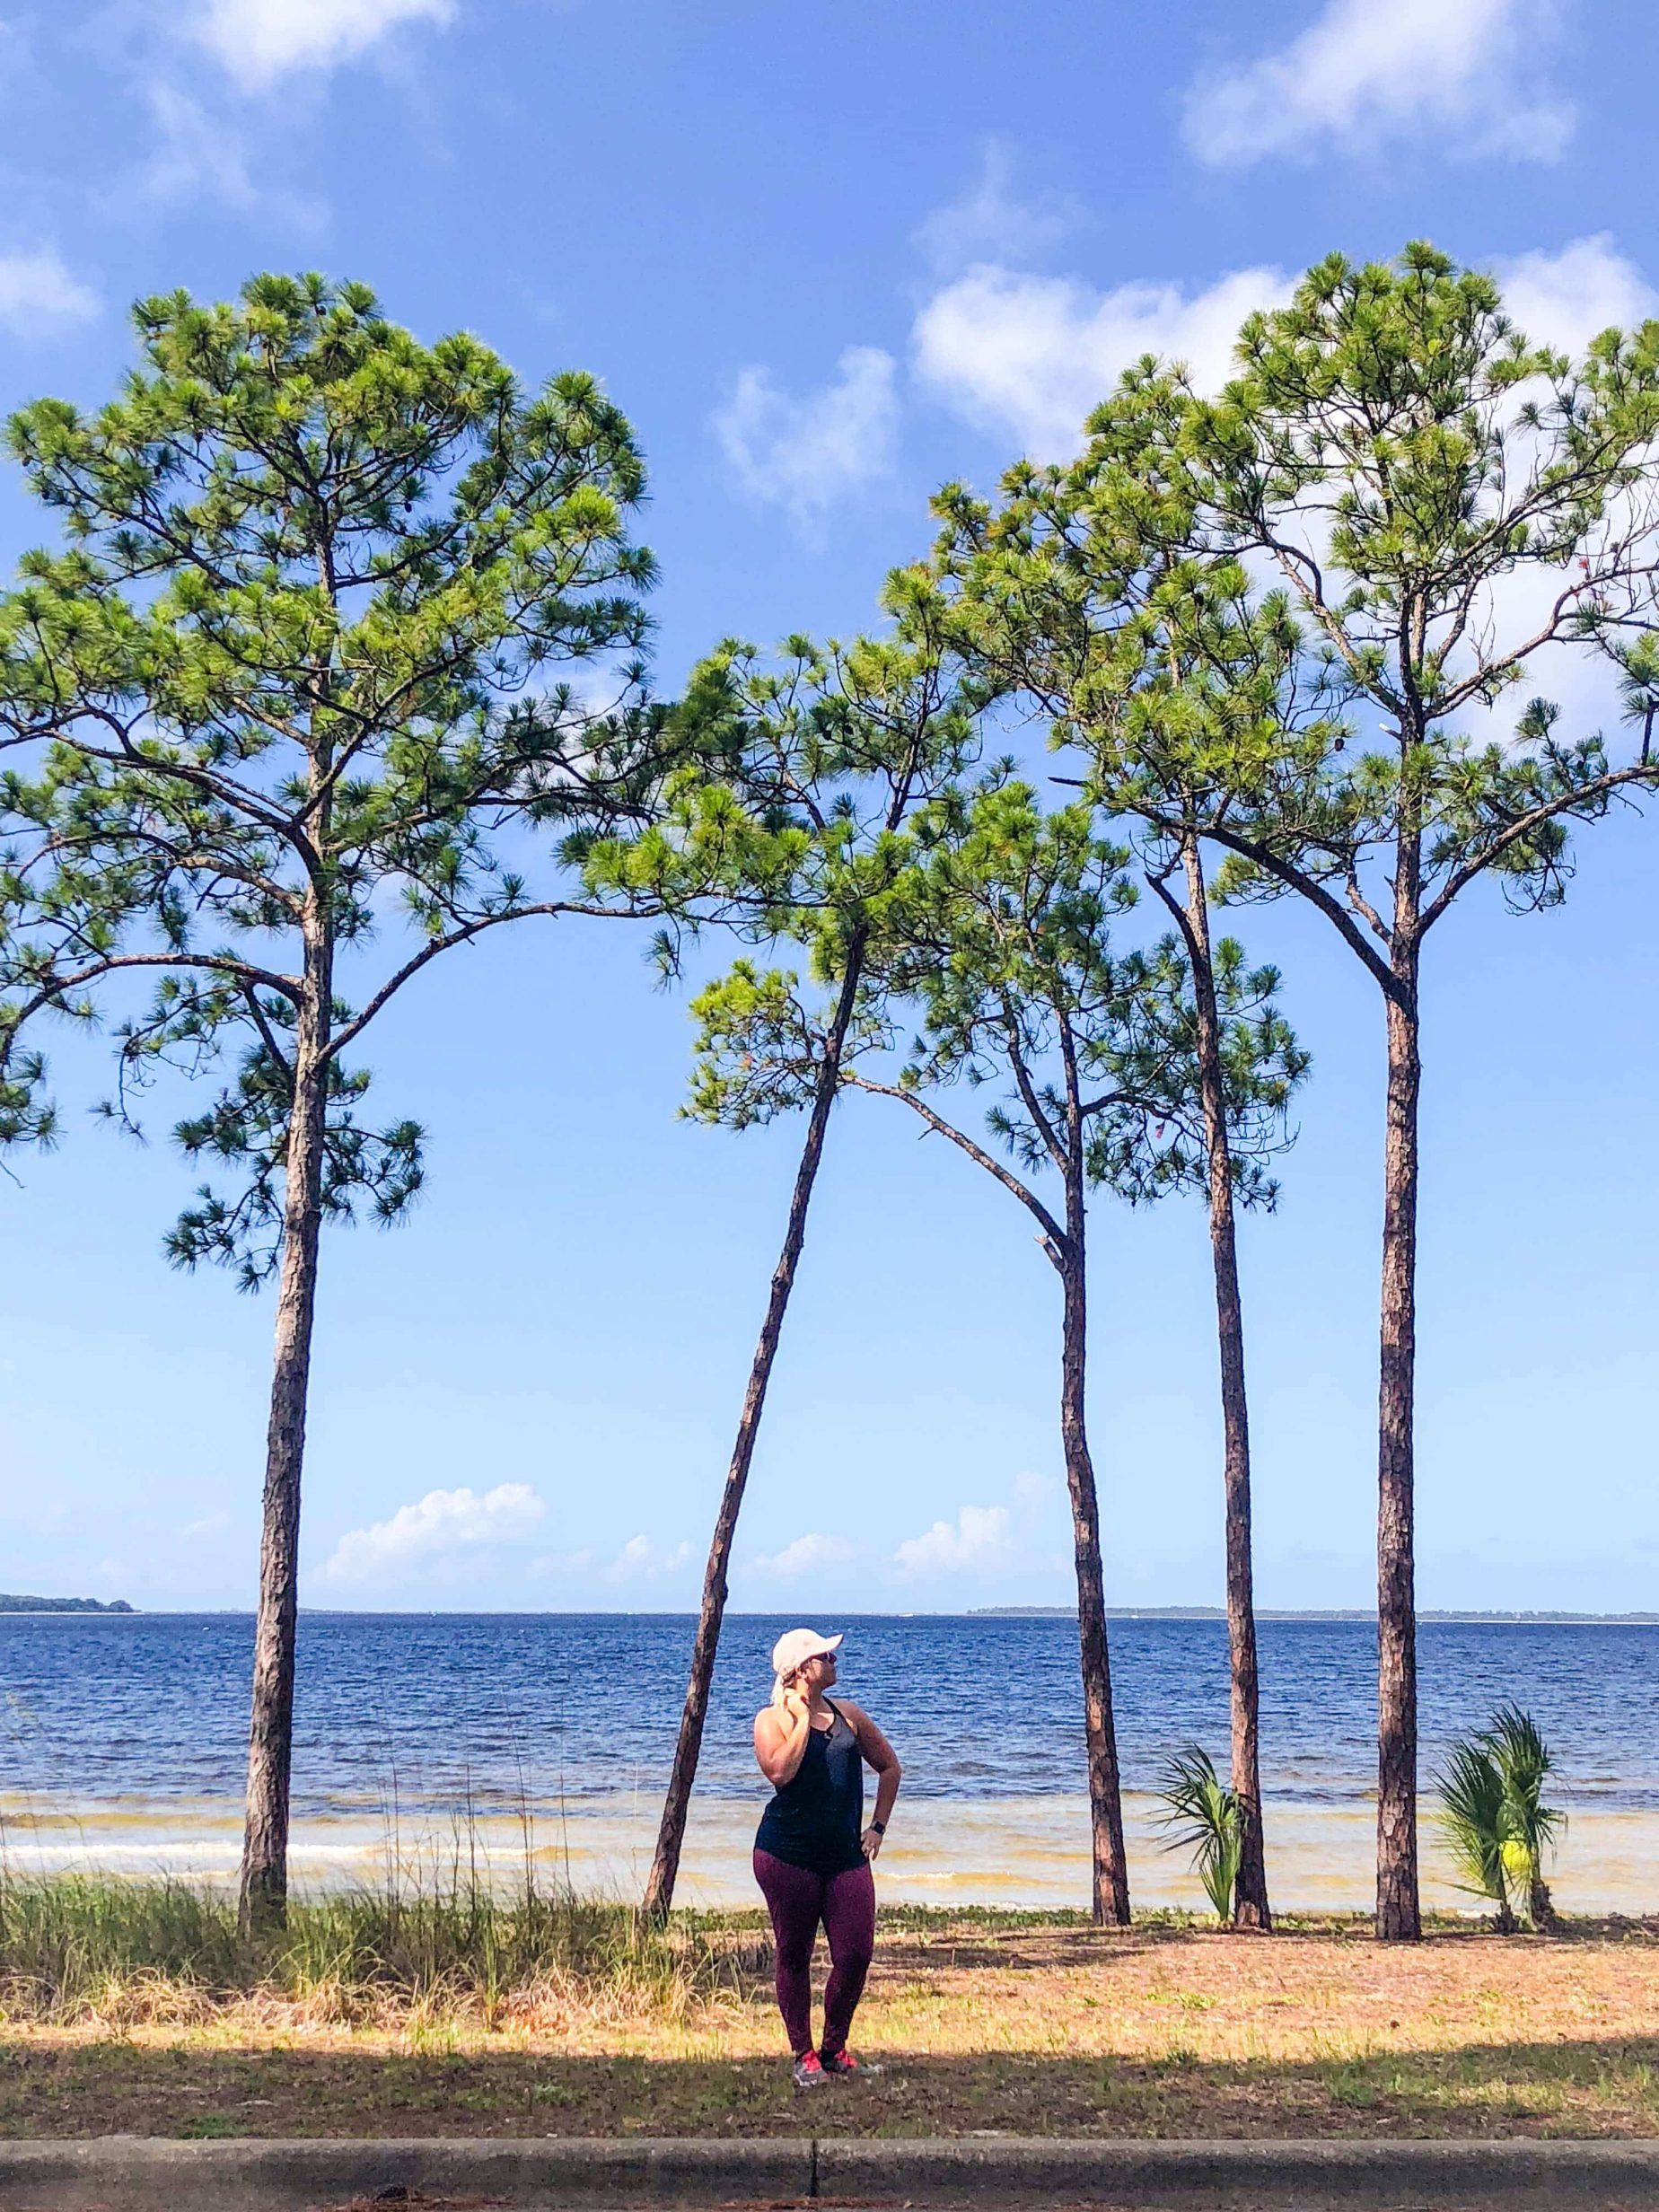 How I'm Getting Out Of My Fitness Rut #whatsavvysaid #wellness #lifestyle #fitnessrut #getfit #healthylifestyle #workouts #running #beachrun #floridabeaches #outdoorworkout #sunnyday #targetstyle #beachday